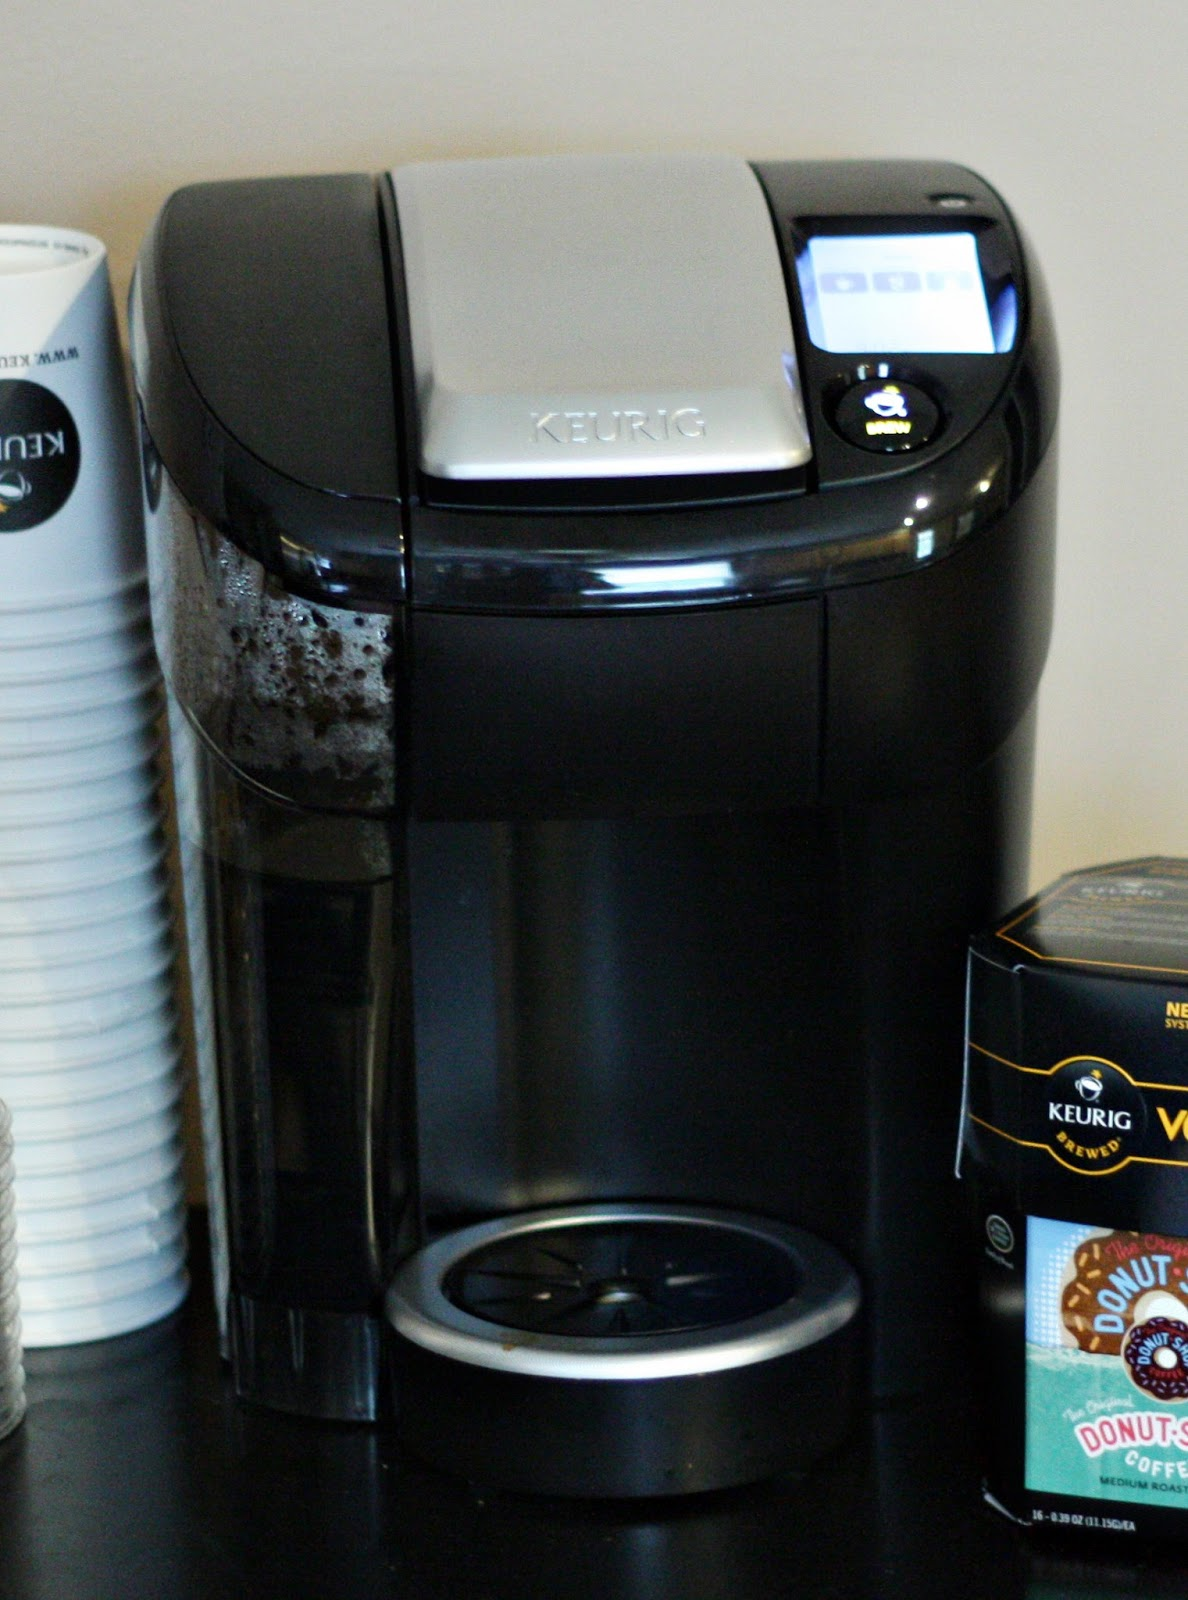 The Fast Lane Introducing The Keurig Vue V500